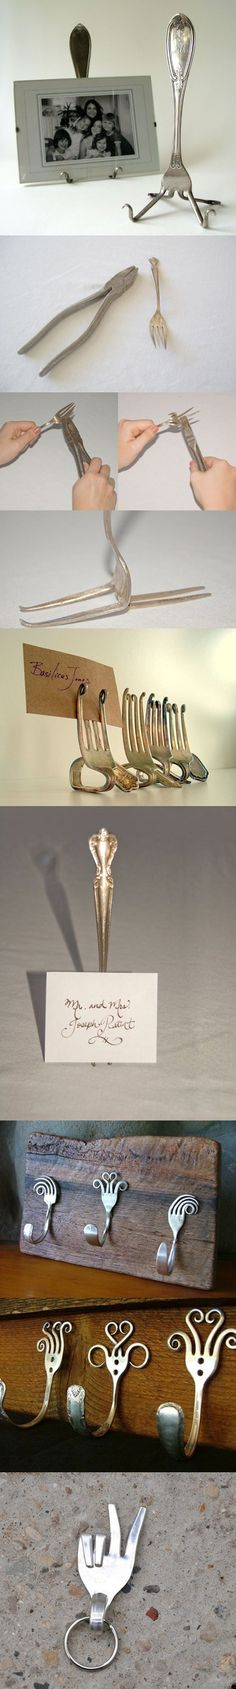 DIY: Forks! This is awesome!!